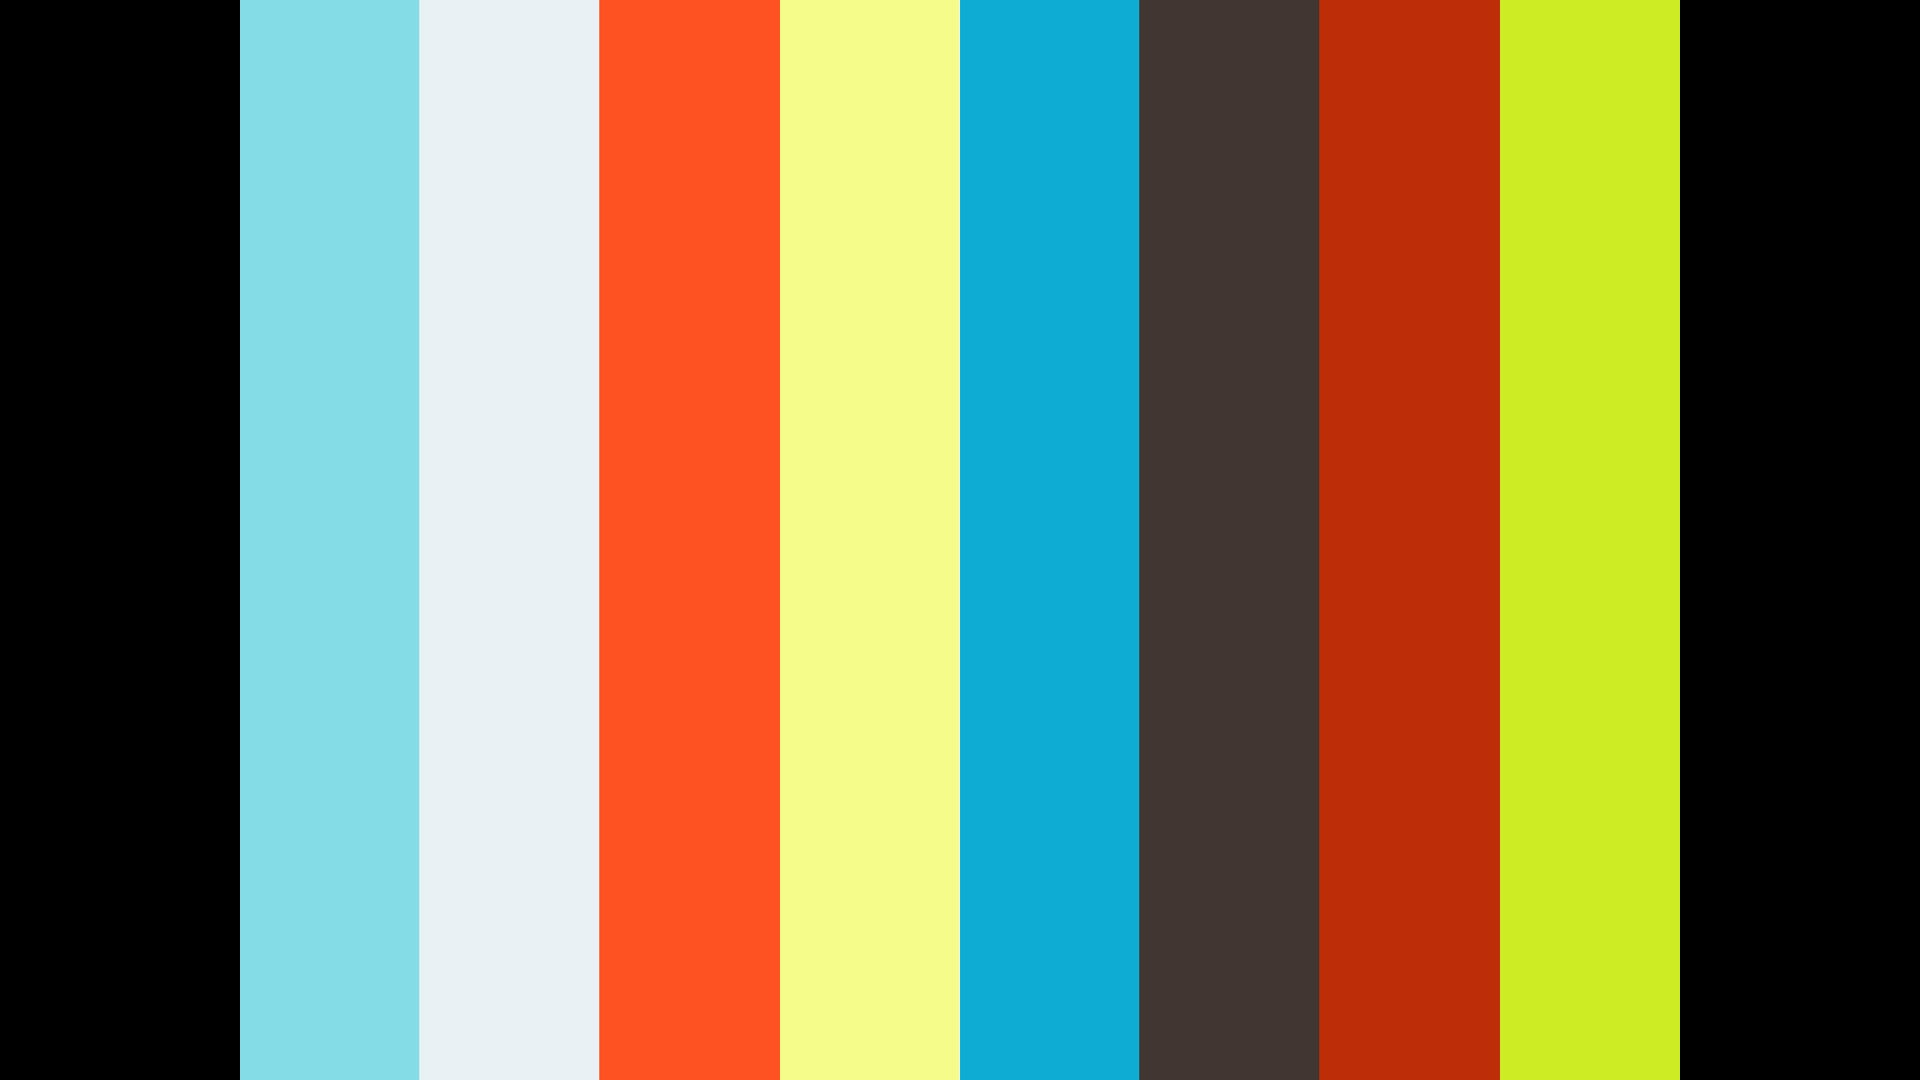 Vídeos corporativos de Apple: ¿Cómo los usa en su estrategia de marketing? | Videocontent Tu vídeo desde 350€ | 818487769 1920x1080 | videos-corporativos-videos, video, blogs, actualidad